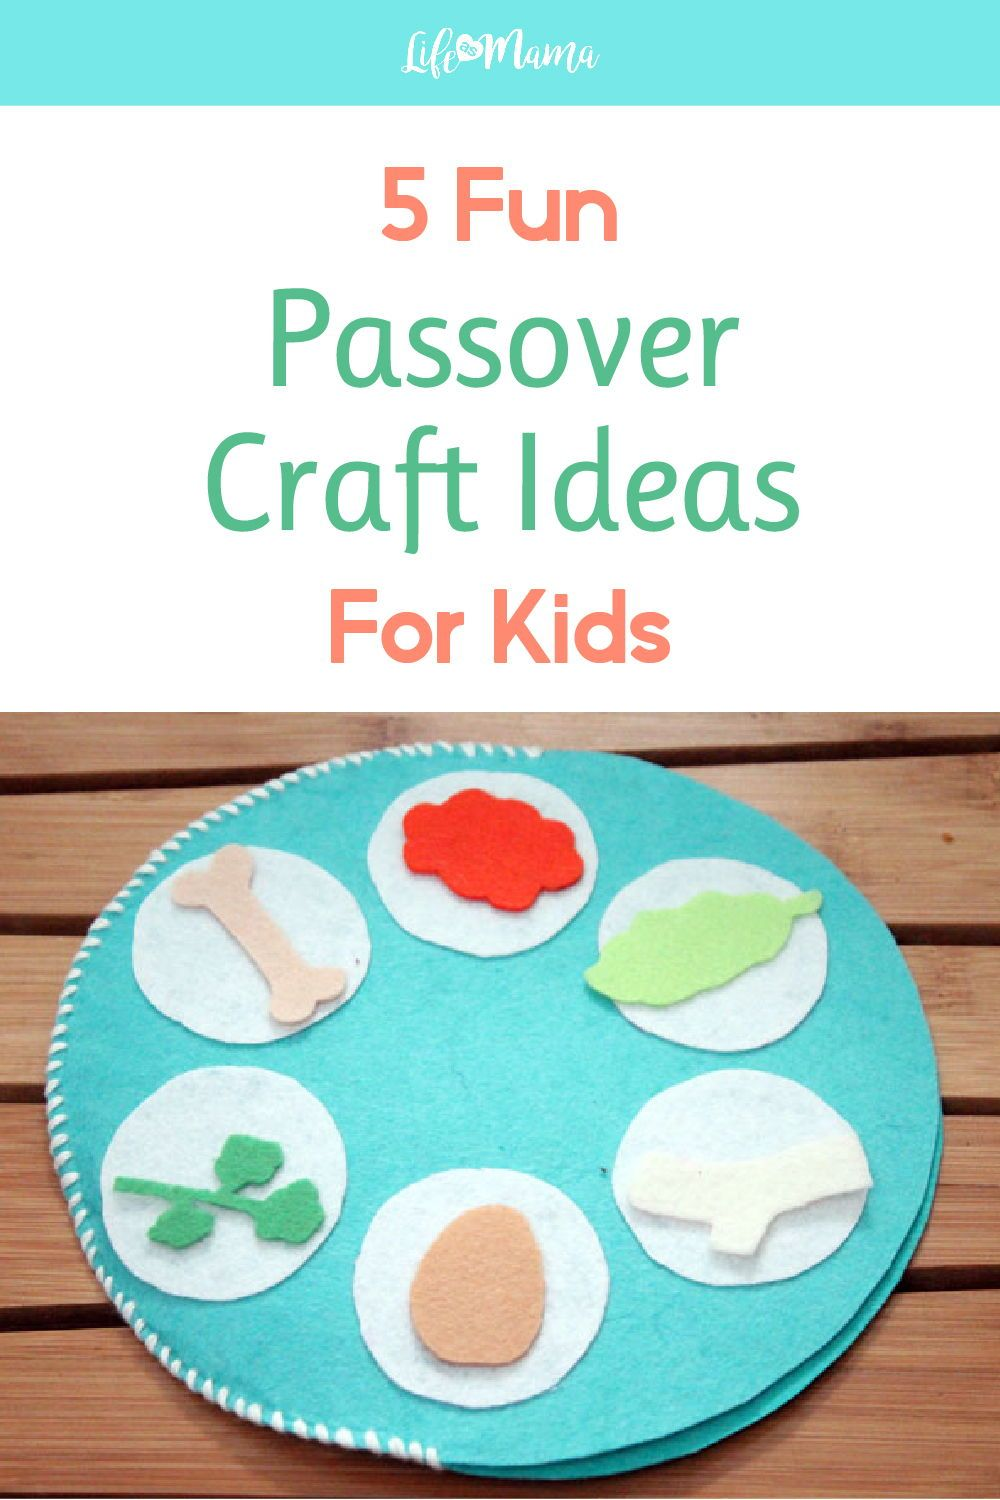 5 Fun Passover Crafts For Kids To Celebrate Pesach In 2020 Passover Crafts Crafts Crafts For Kids